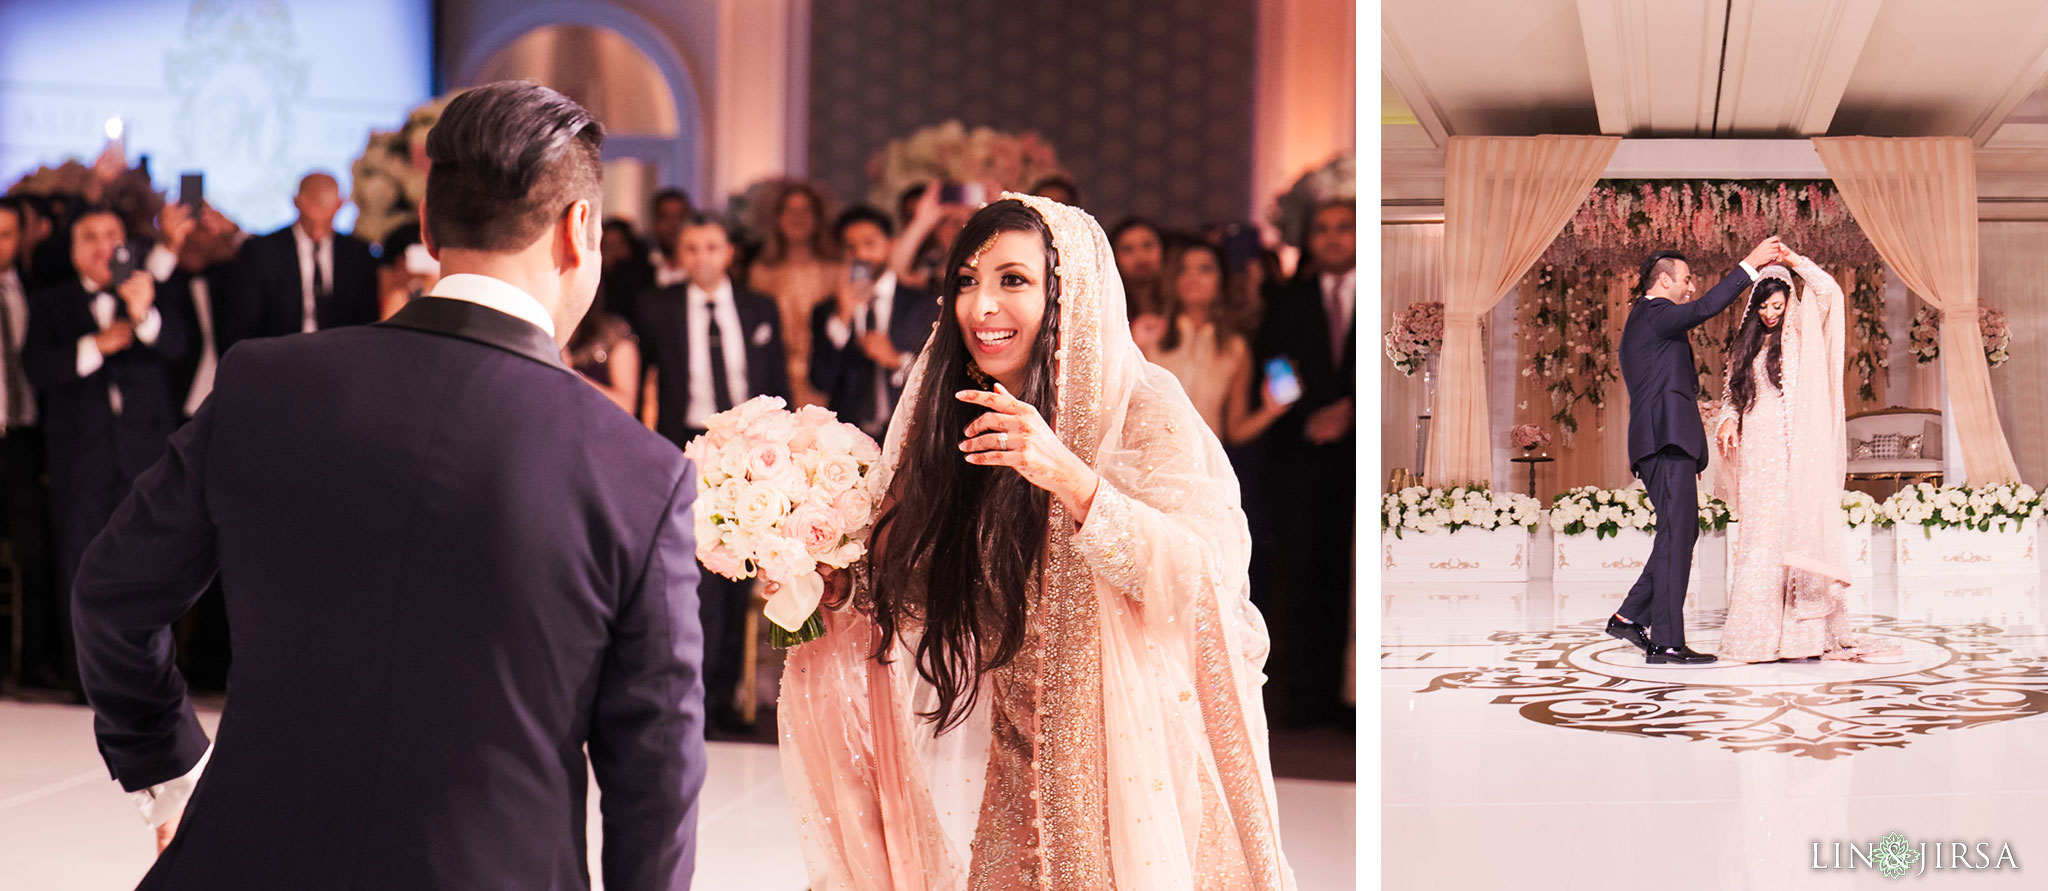 031 ritz carlton laguna niguel south asian wedding reception photography